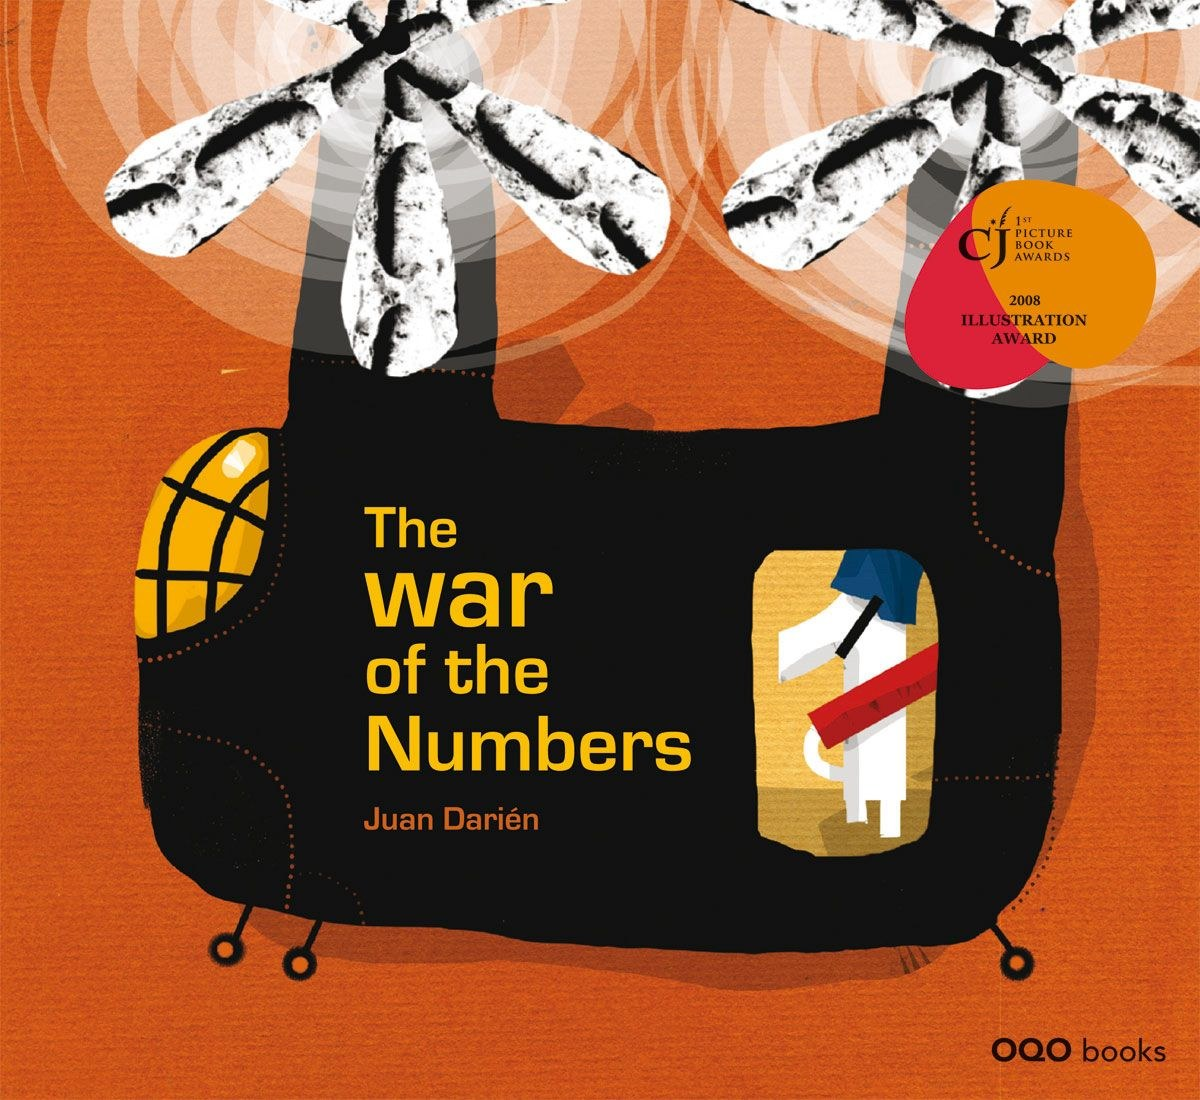 The war of the Numbers